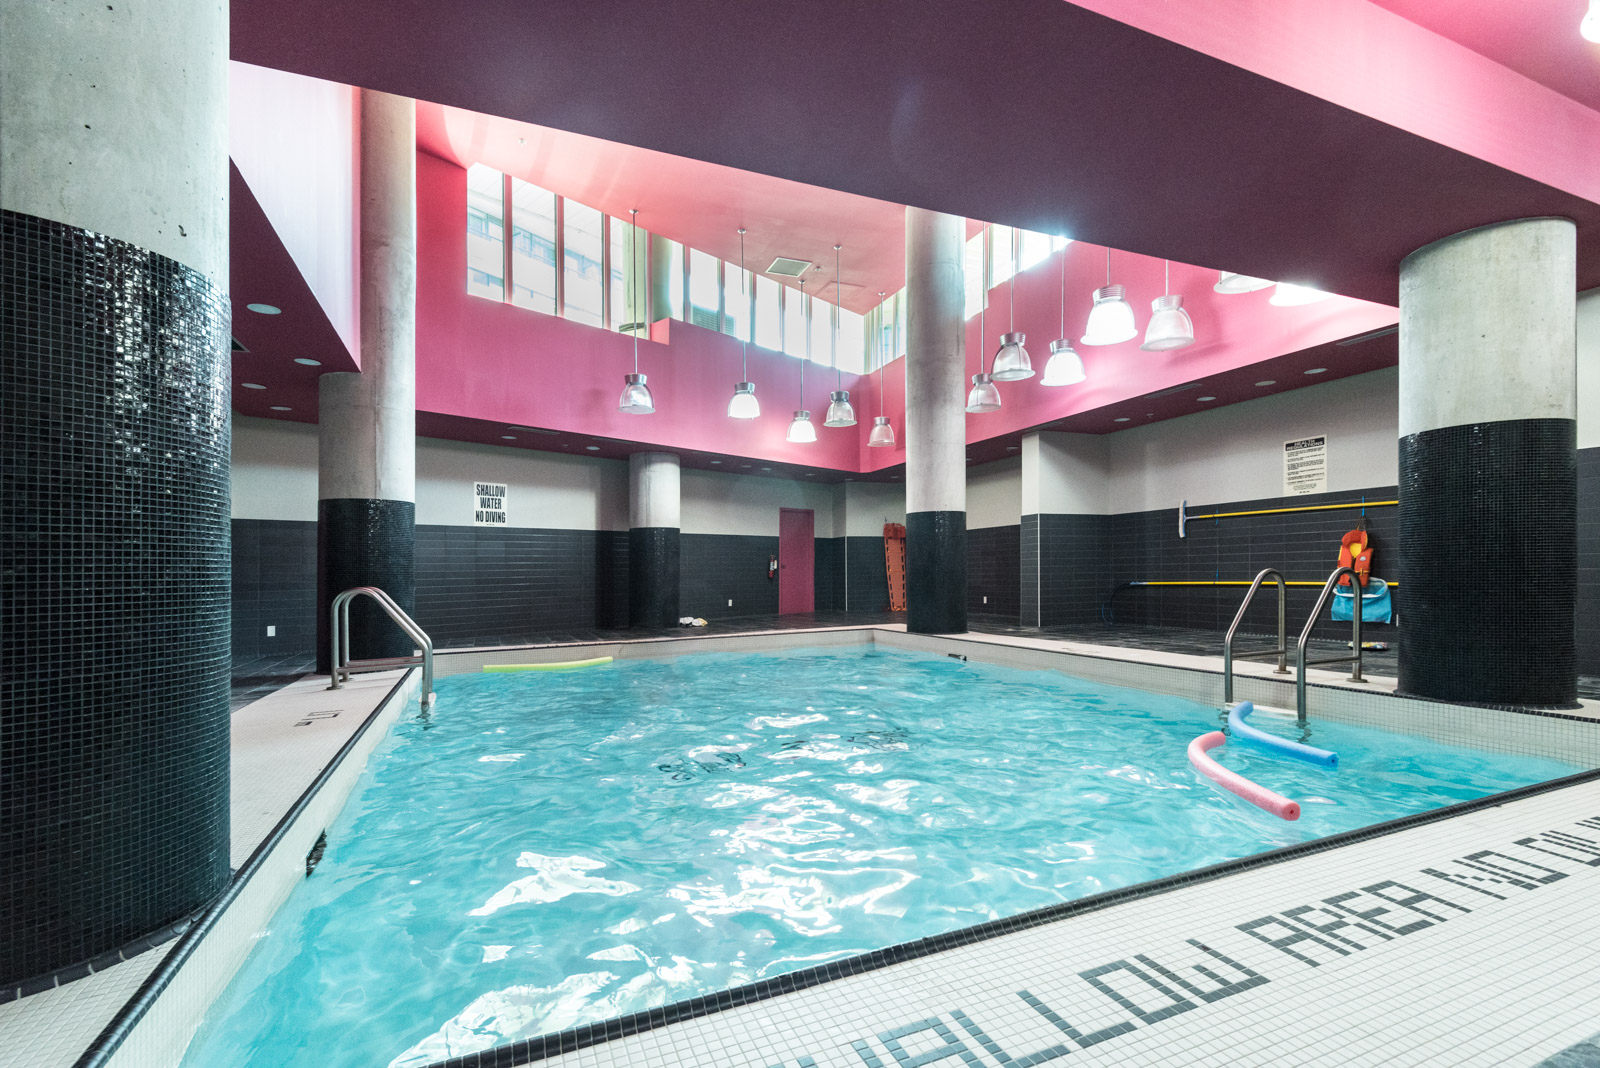 Here we see the condo pool and its sparkling blue water and rather pinkish walls.